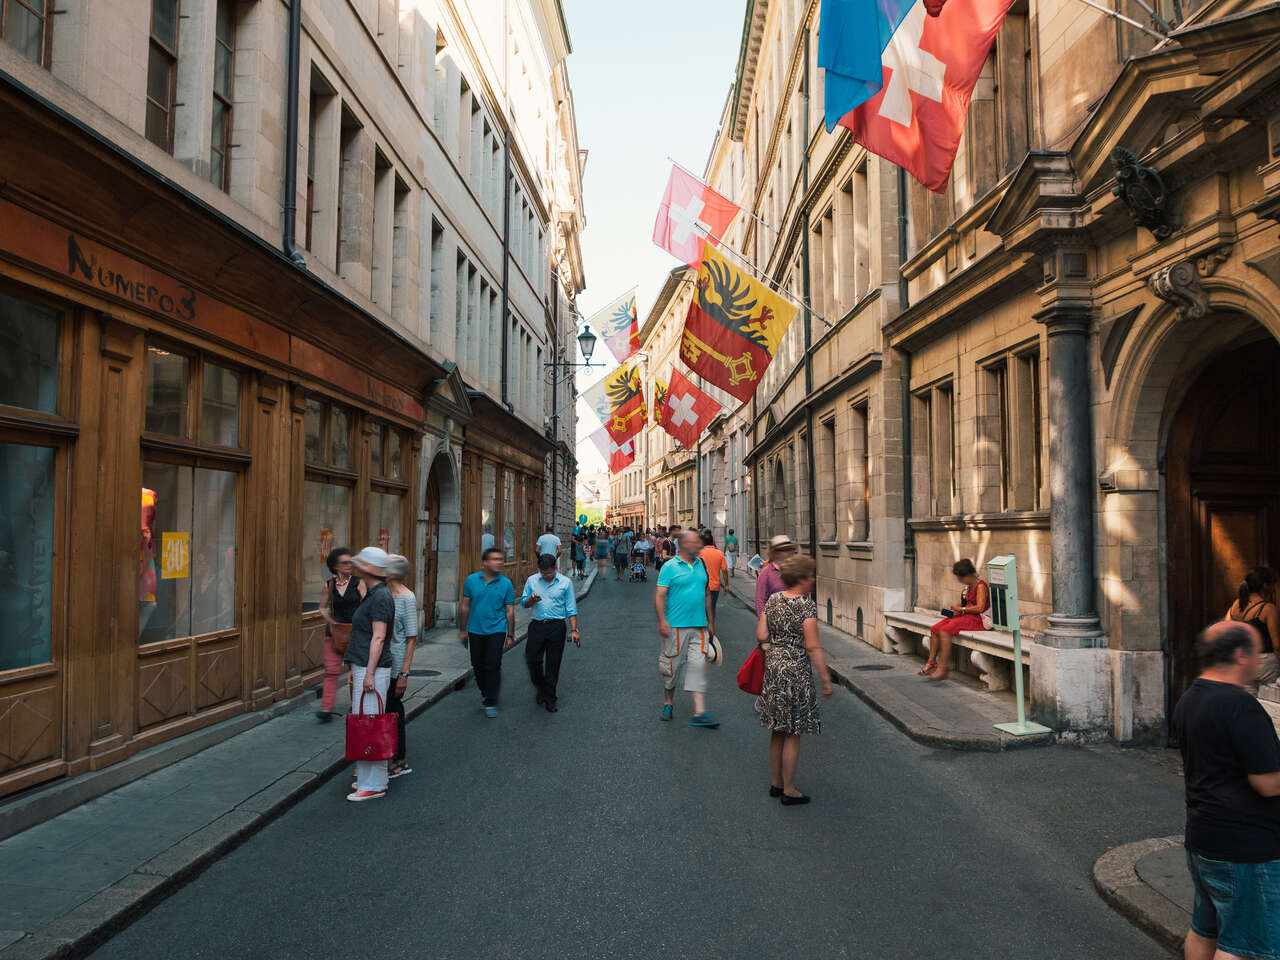 People walking on an Old Town street, with flags attached to buildings